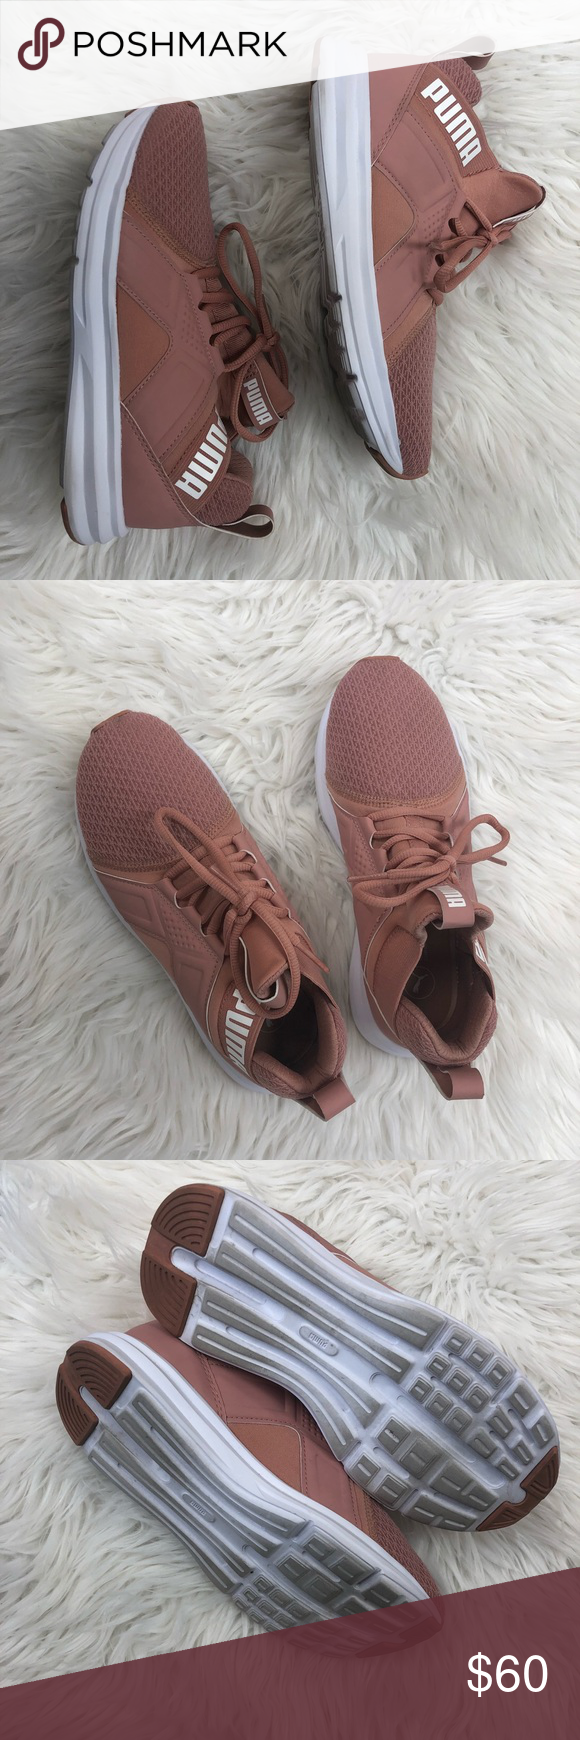 118788f8db1 Puma Women s Zenvo Sneaker sz 6 Rose colored puma sneakers. Size 6. Price  is negotiable. Use offer button Puma Shoes Athletic Shoes